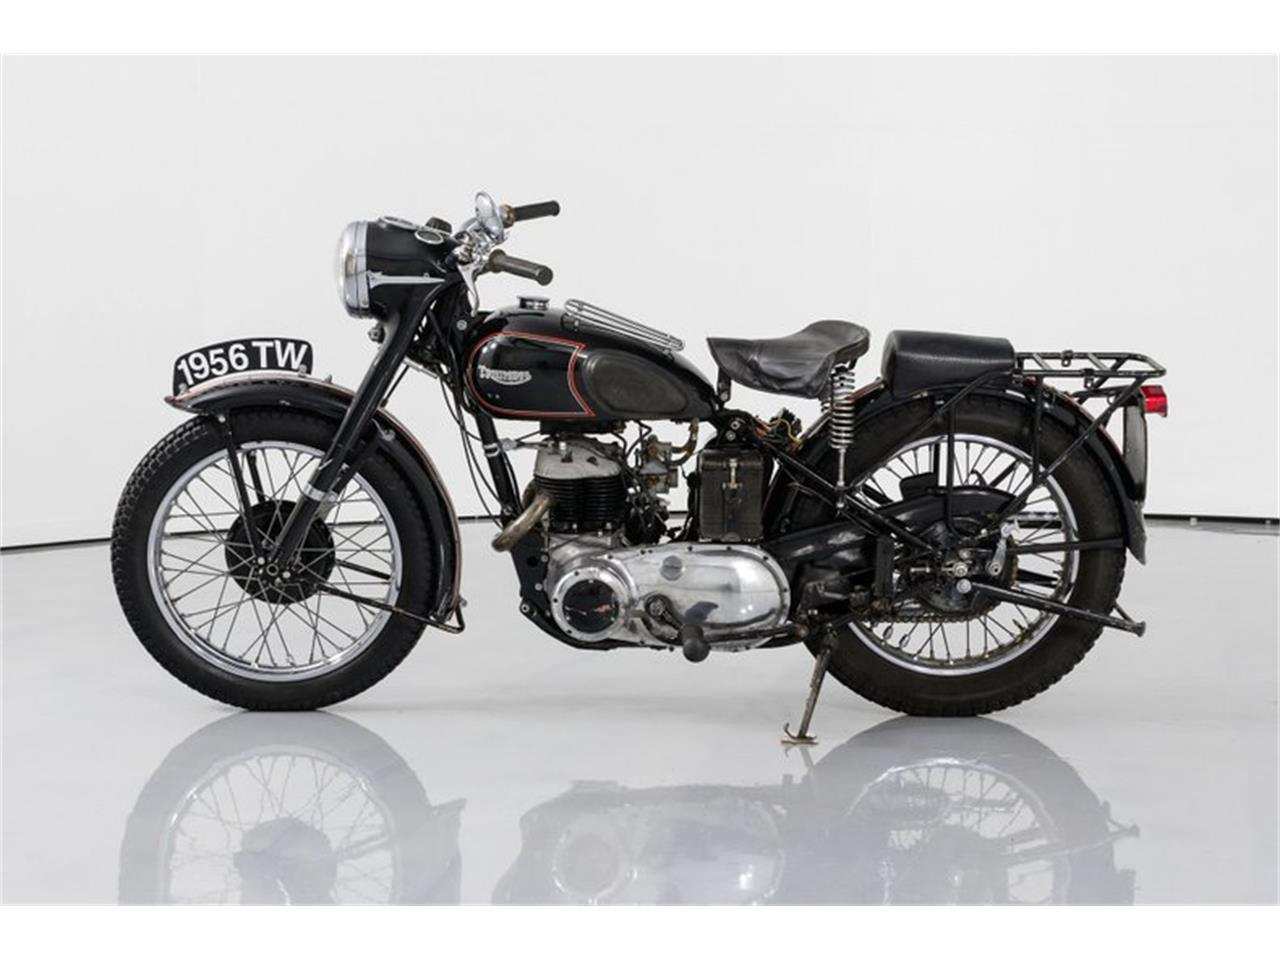 1956 Triumph TRW (CC-1373982) for sale in St. Charles, Missouri